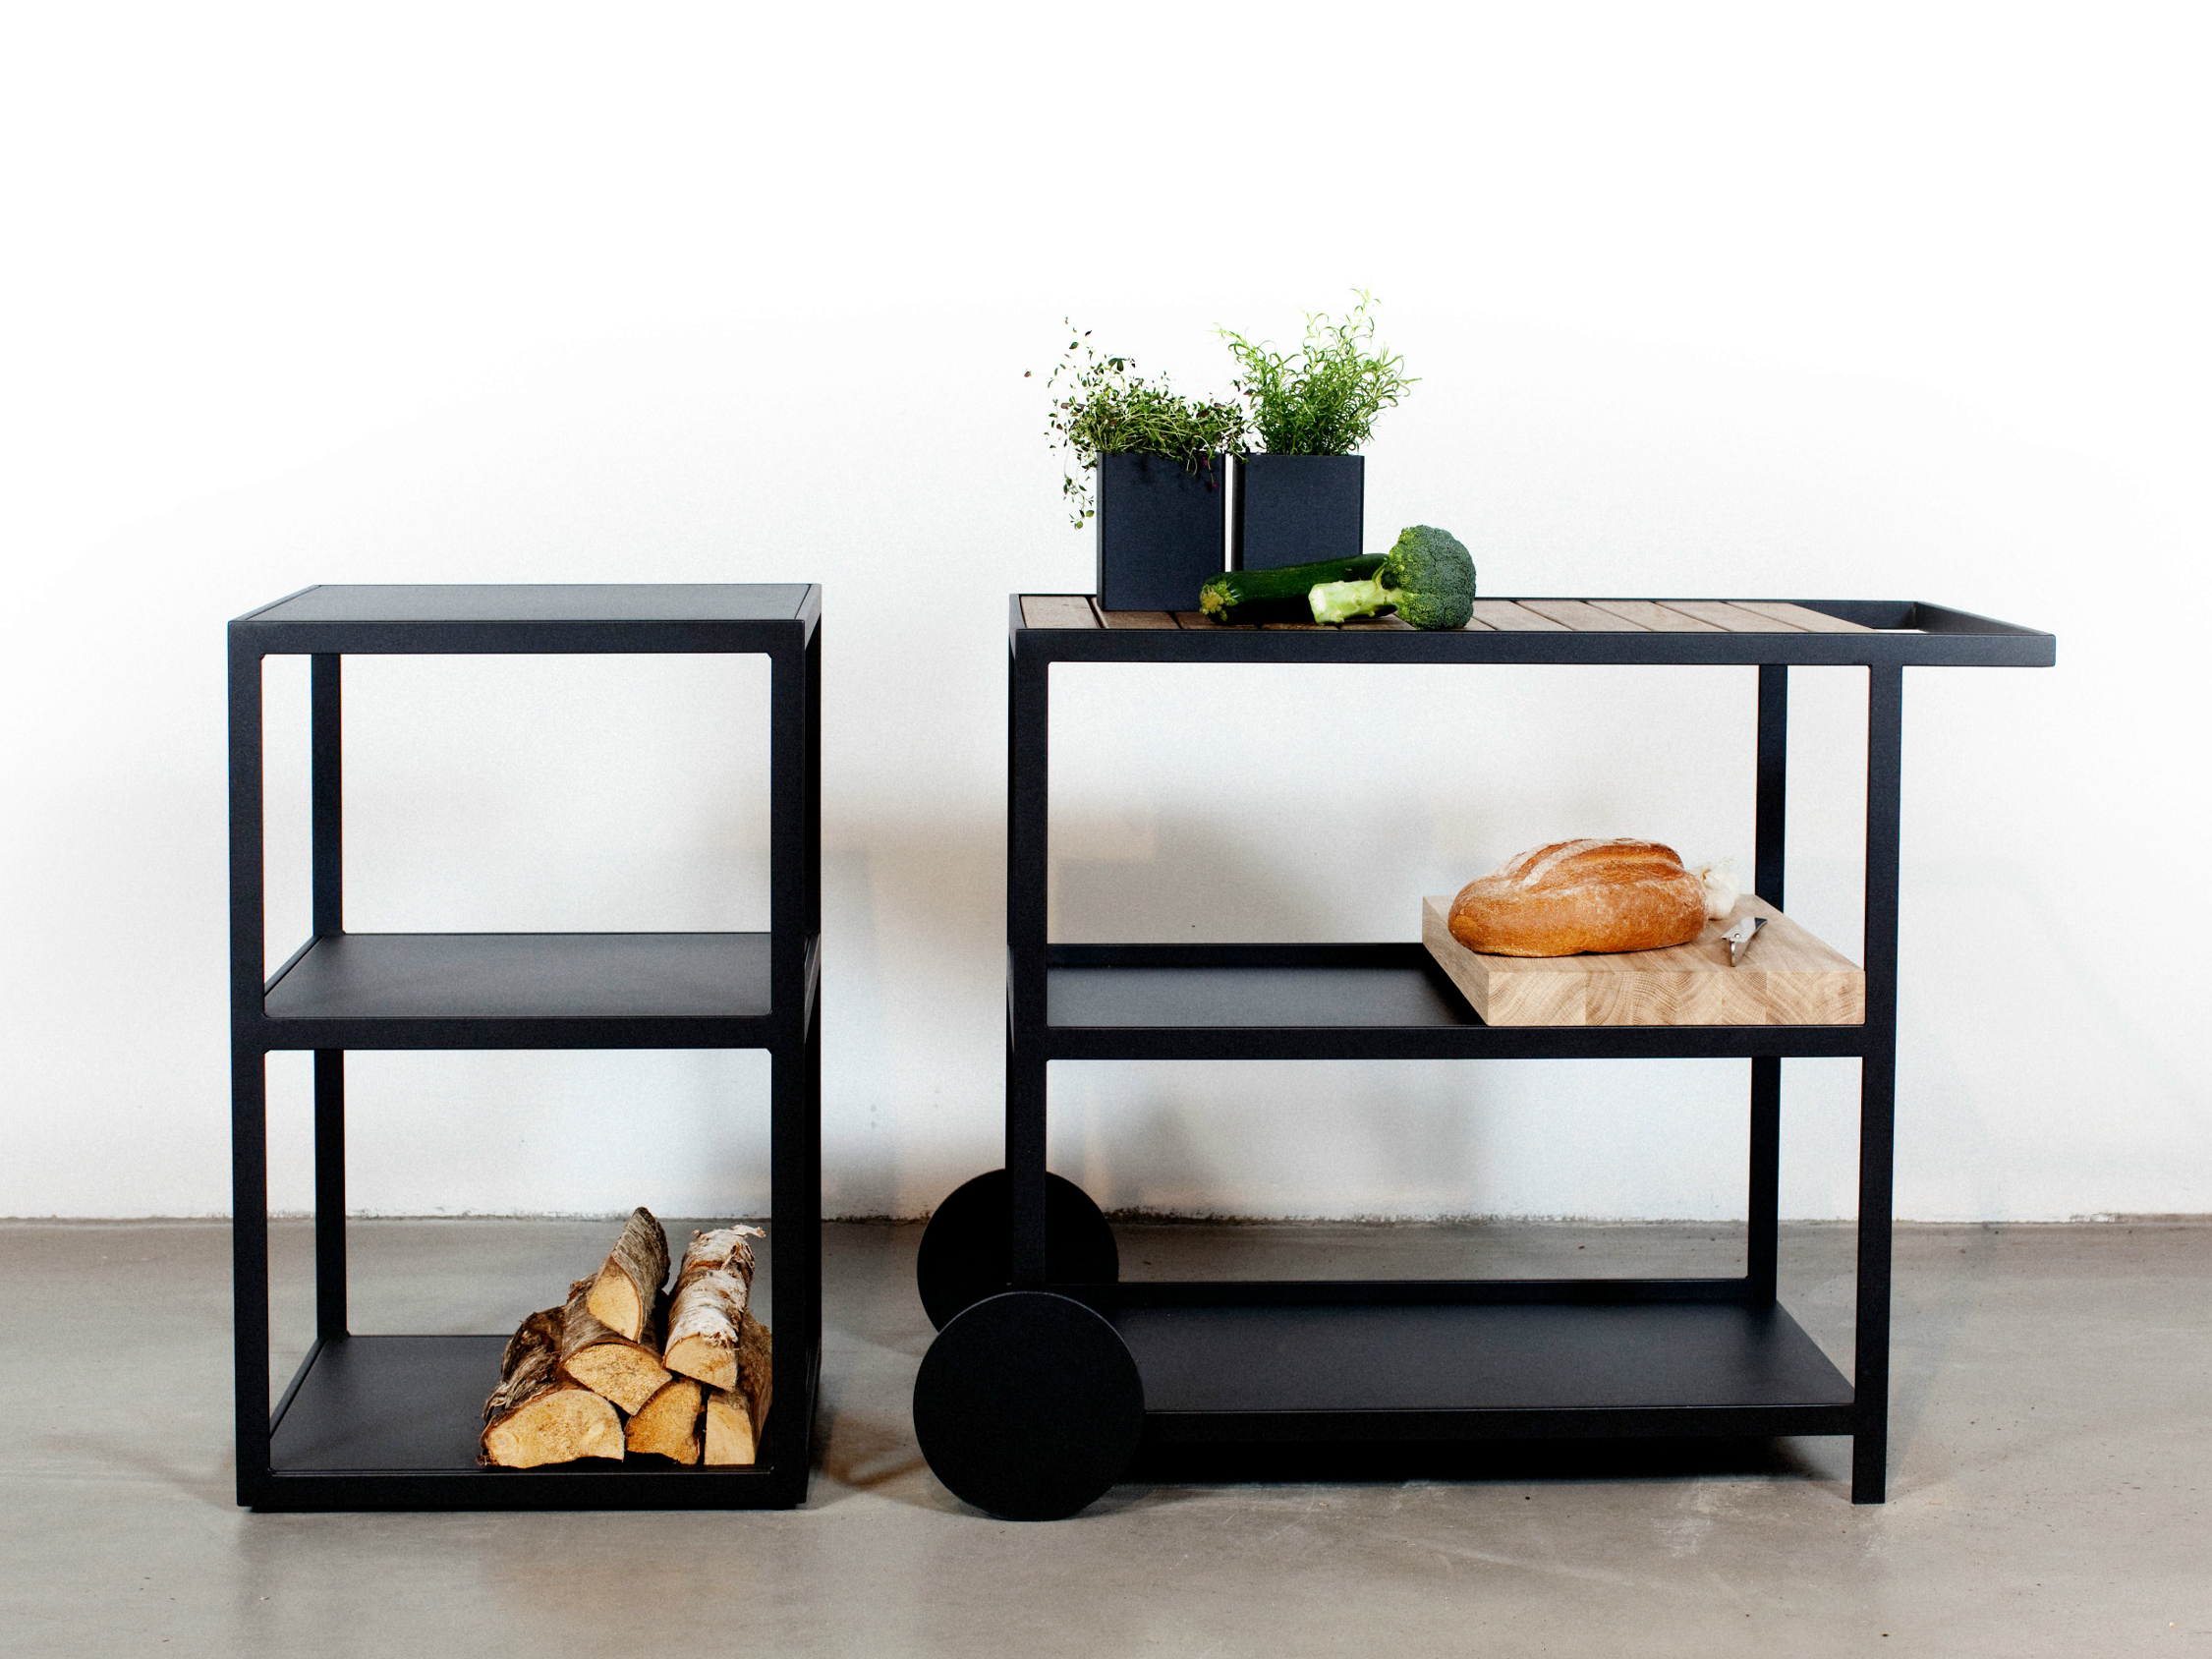 Carrello Design. Beautiful Carrelli Acciaio Cucina Gallery Ideas ...